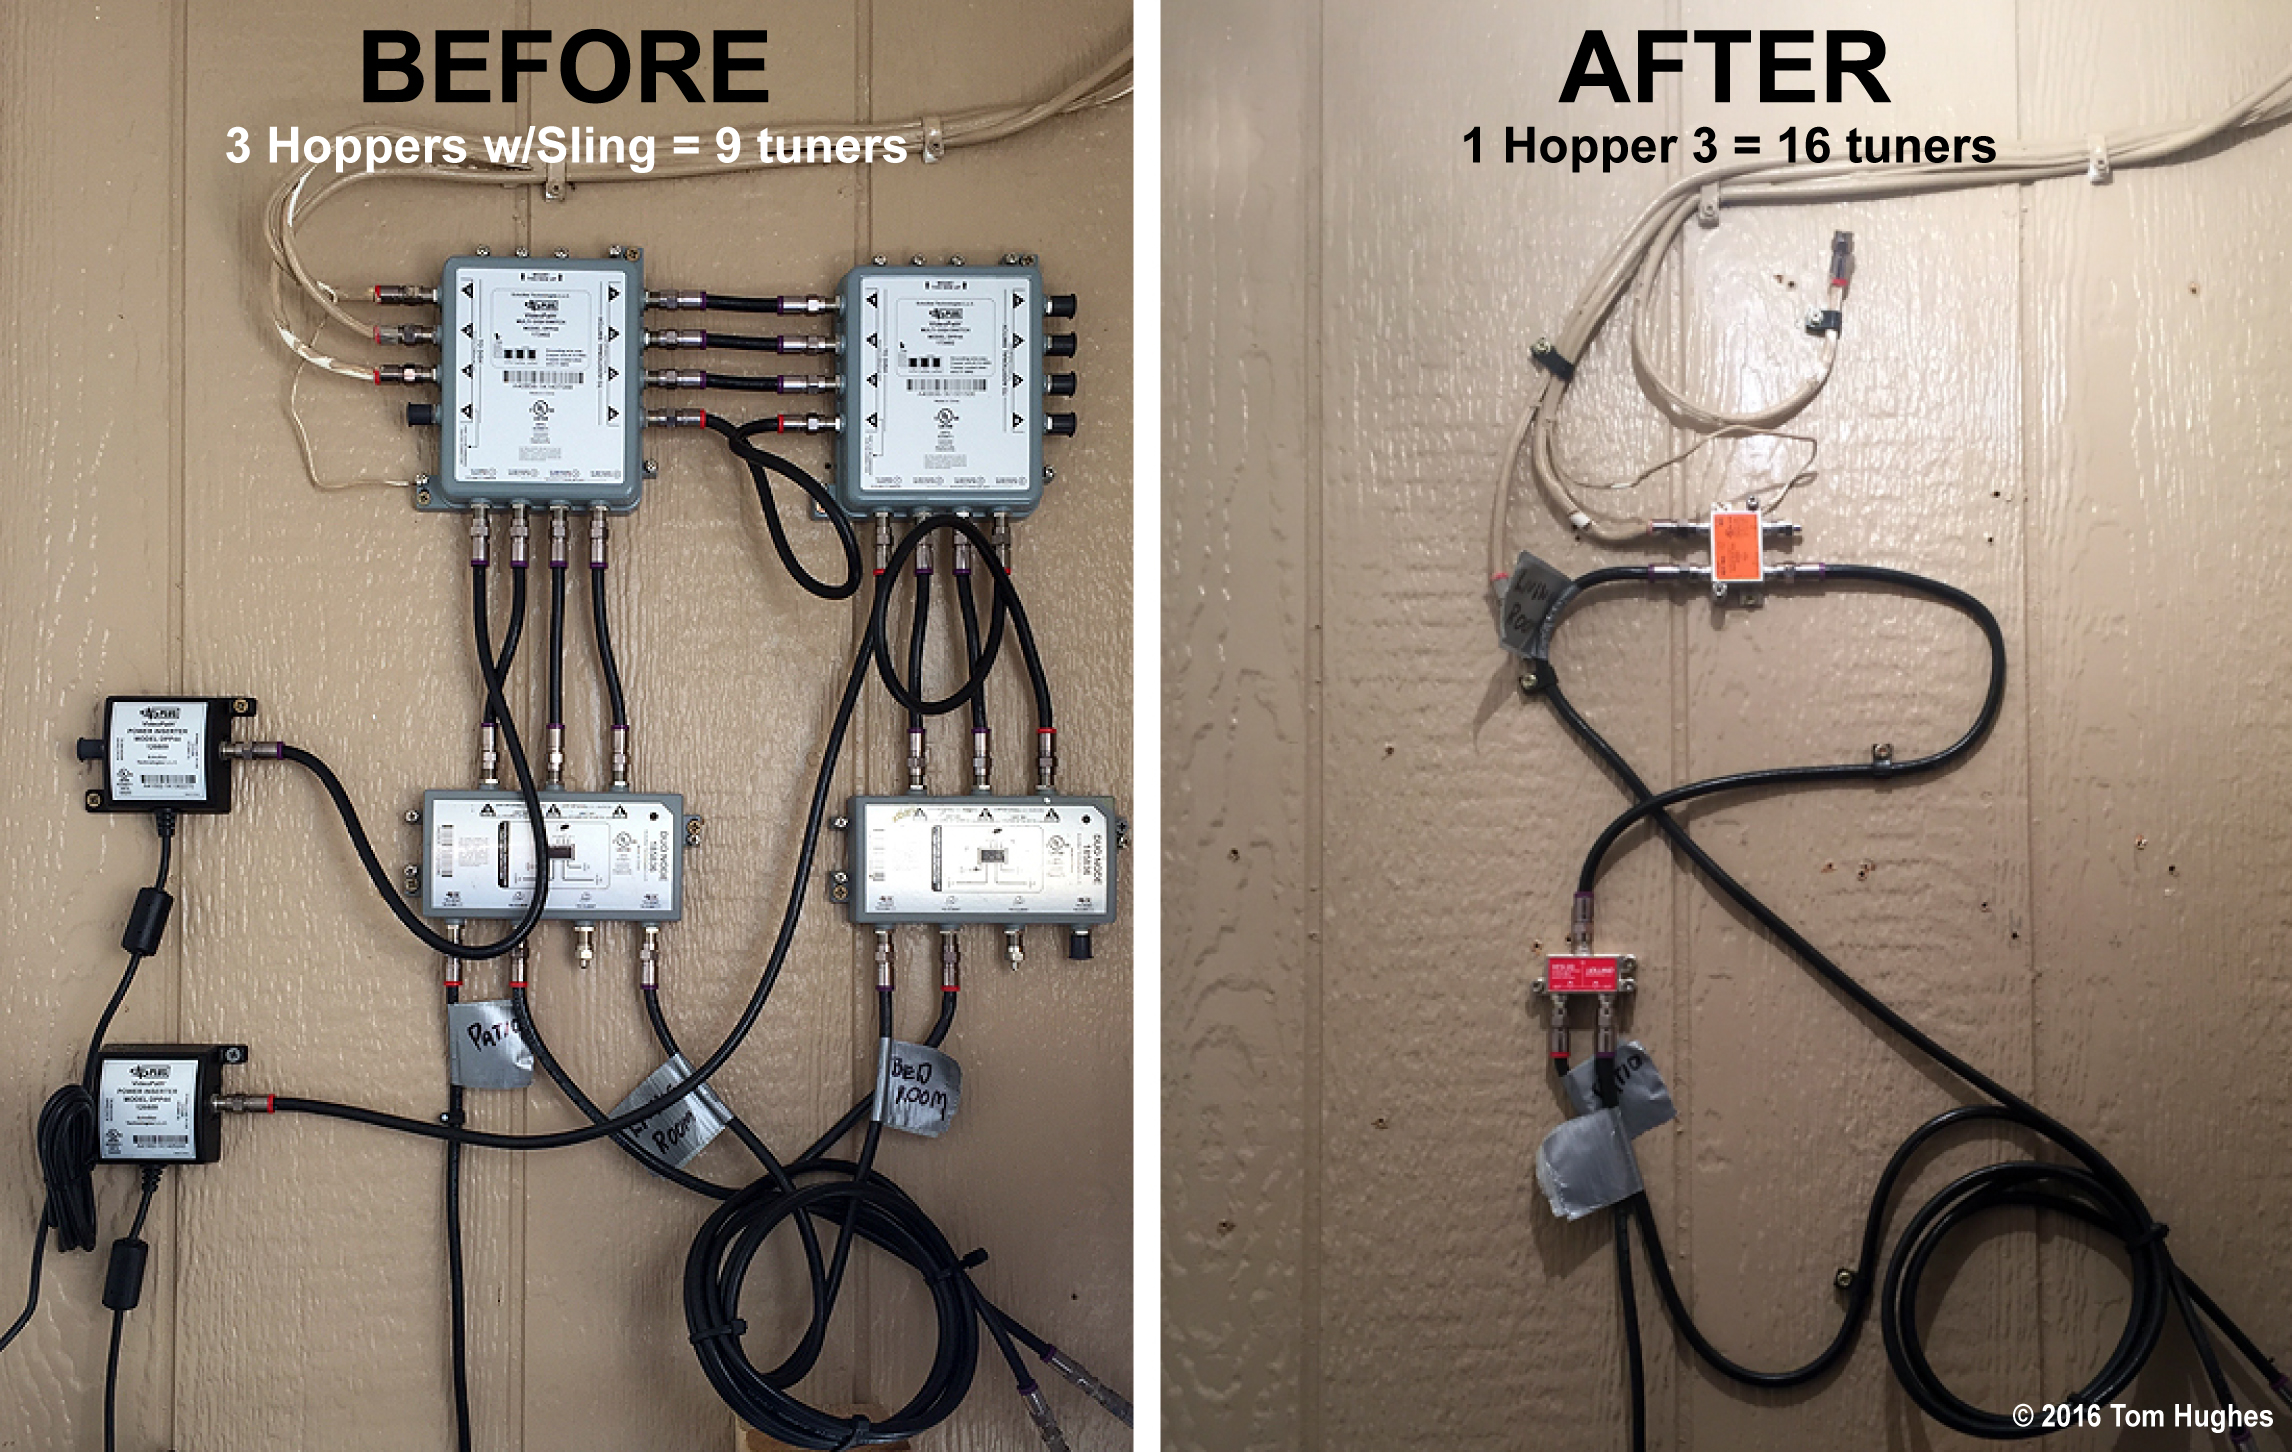 hopper3_install03_before after wiring?resize=665%2C421 dish tv hopper wiring diagram the best wiring diagram 2017 dish network hopper wiring diagram at reclaimingppi.co